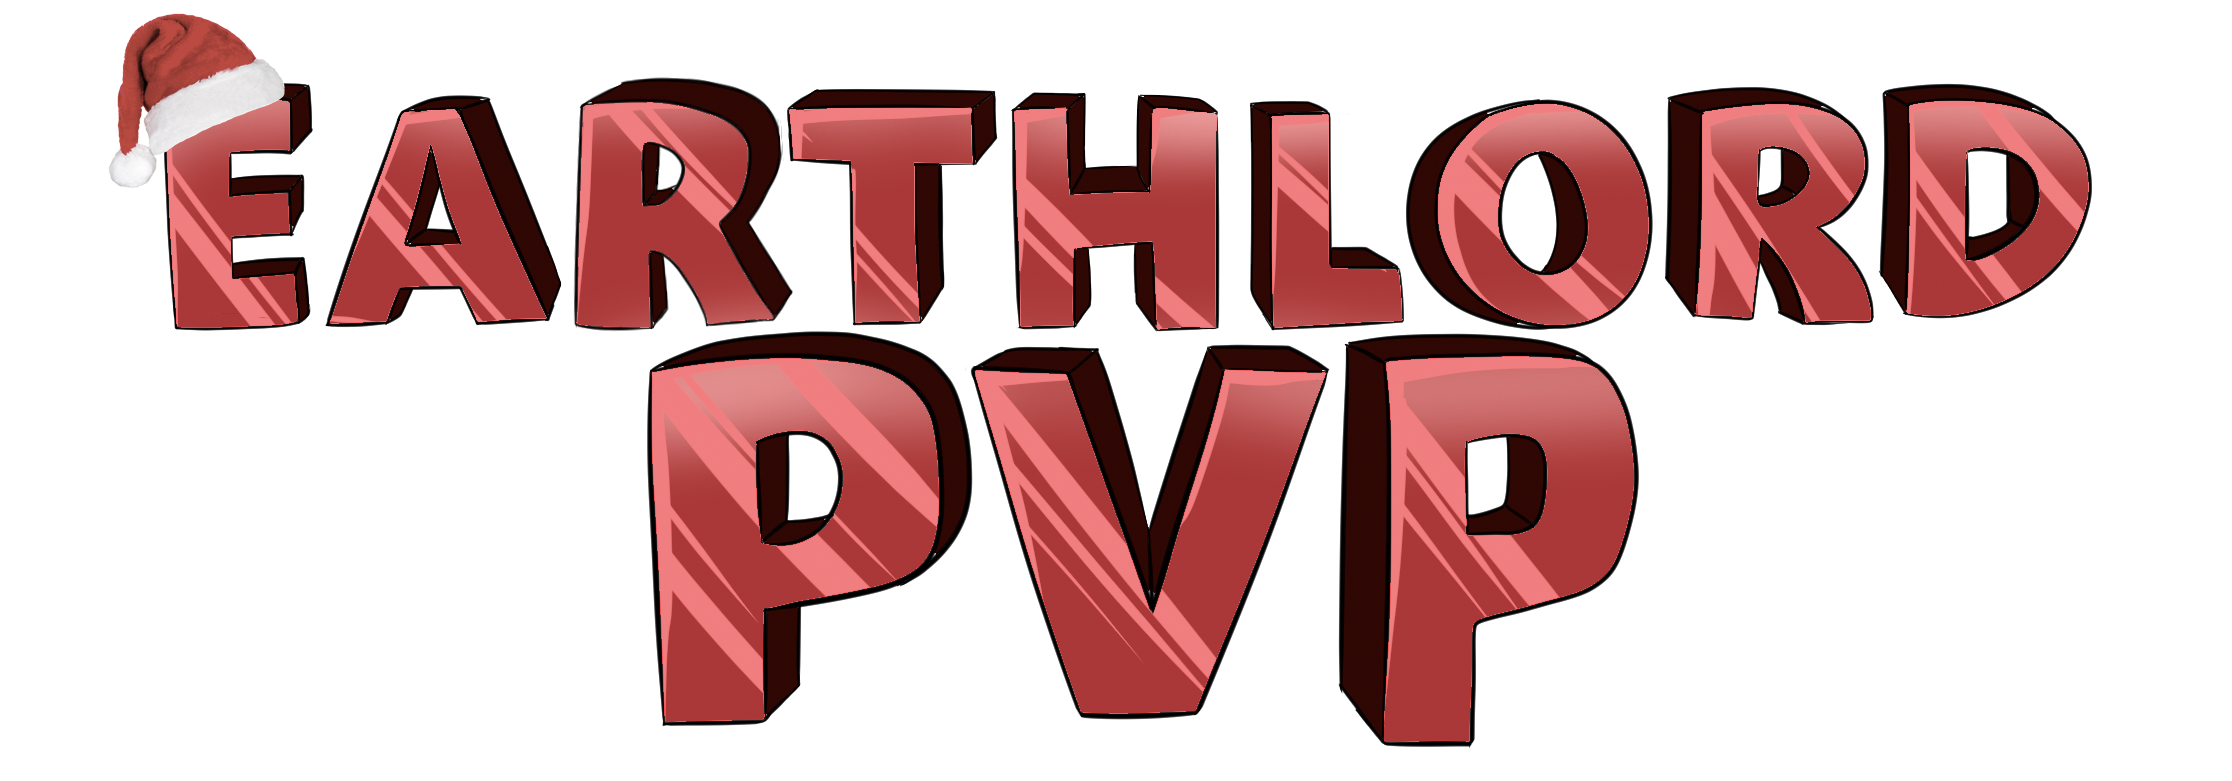 EarthLordPvP - Main Forums